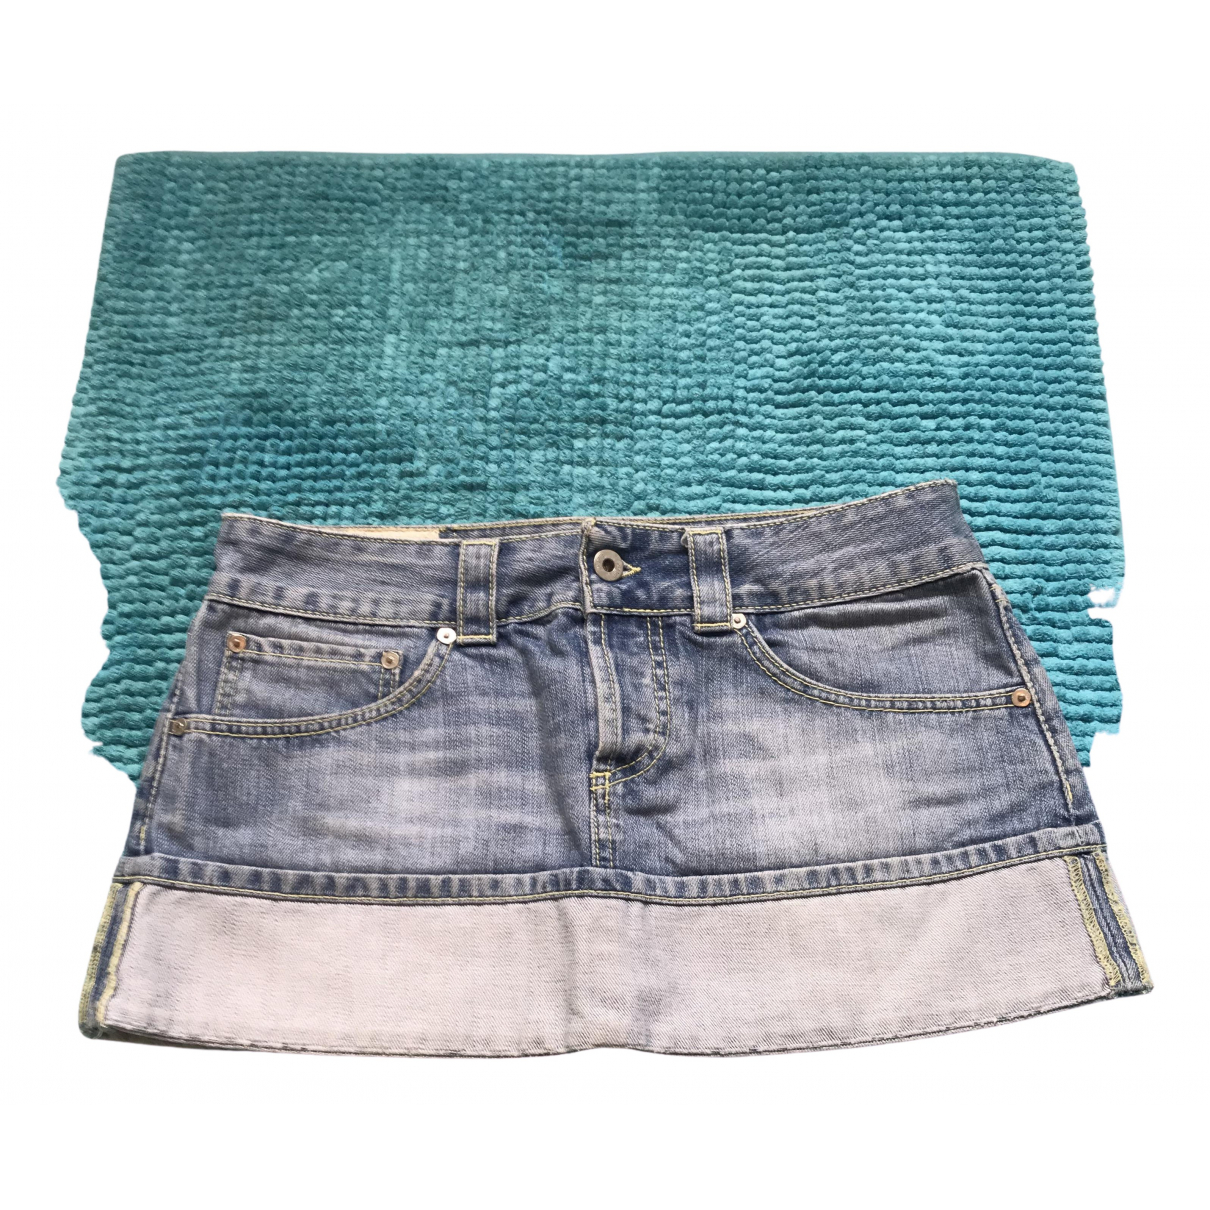 Dondup \N Blue Denim - Jeans skirt for Women 42 IT